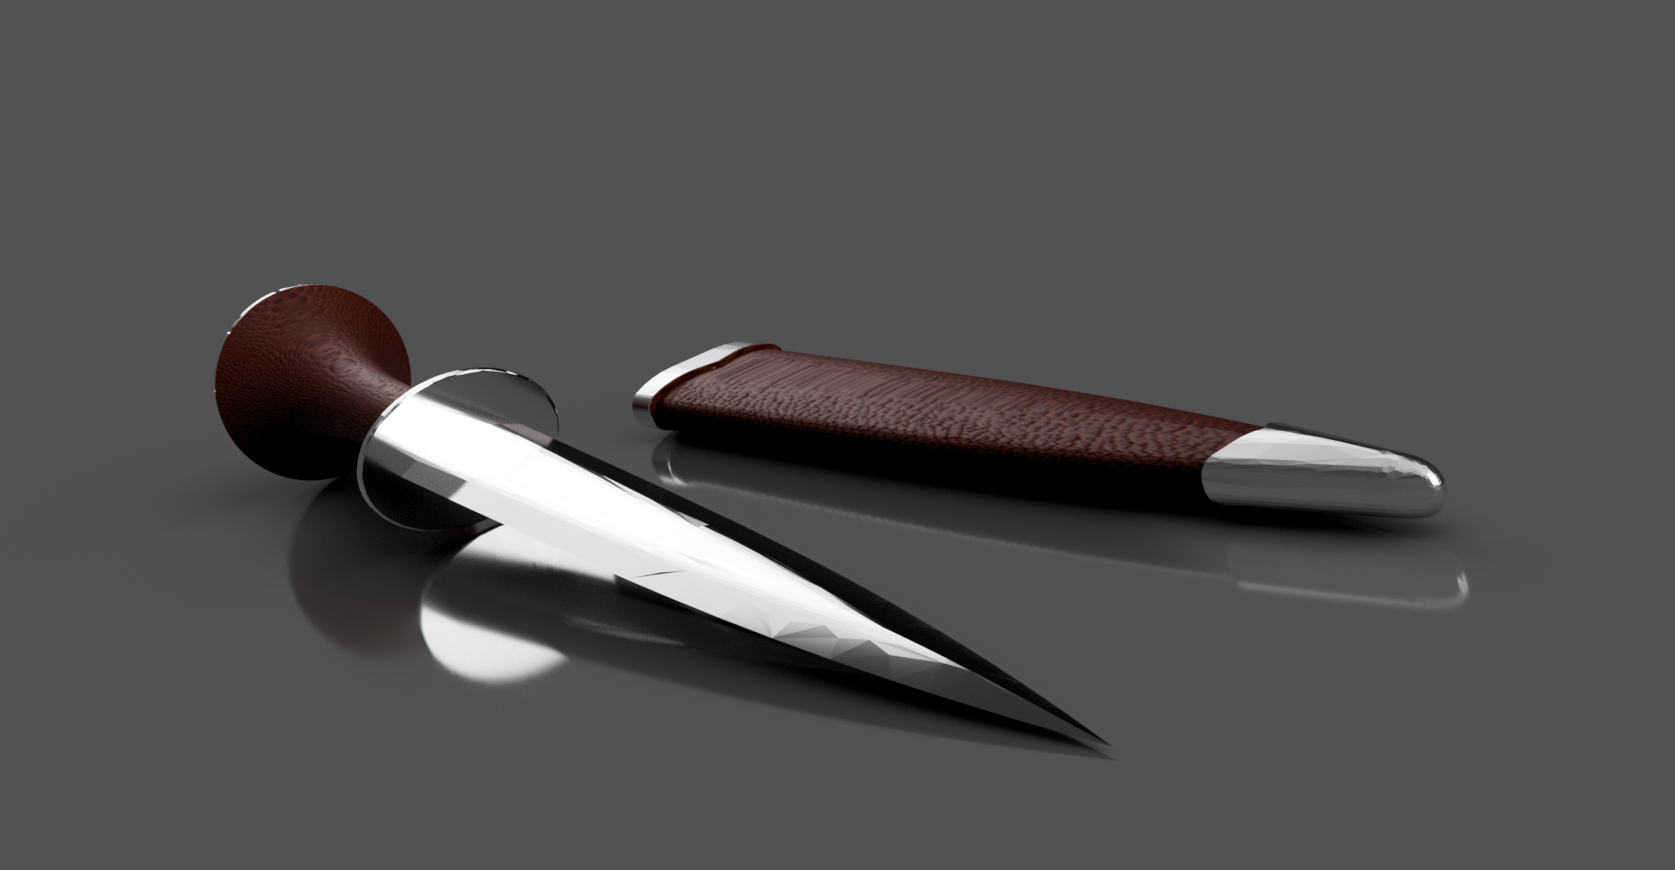 Ciri's Dagger_07.png Download free STL file Ciri's Dagger (Print without support) • 3D print template, Seabird